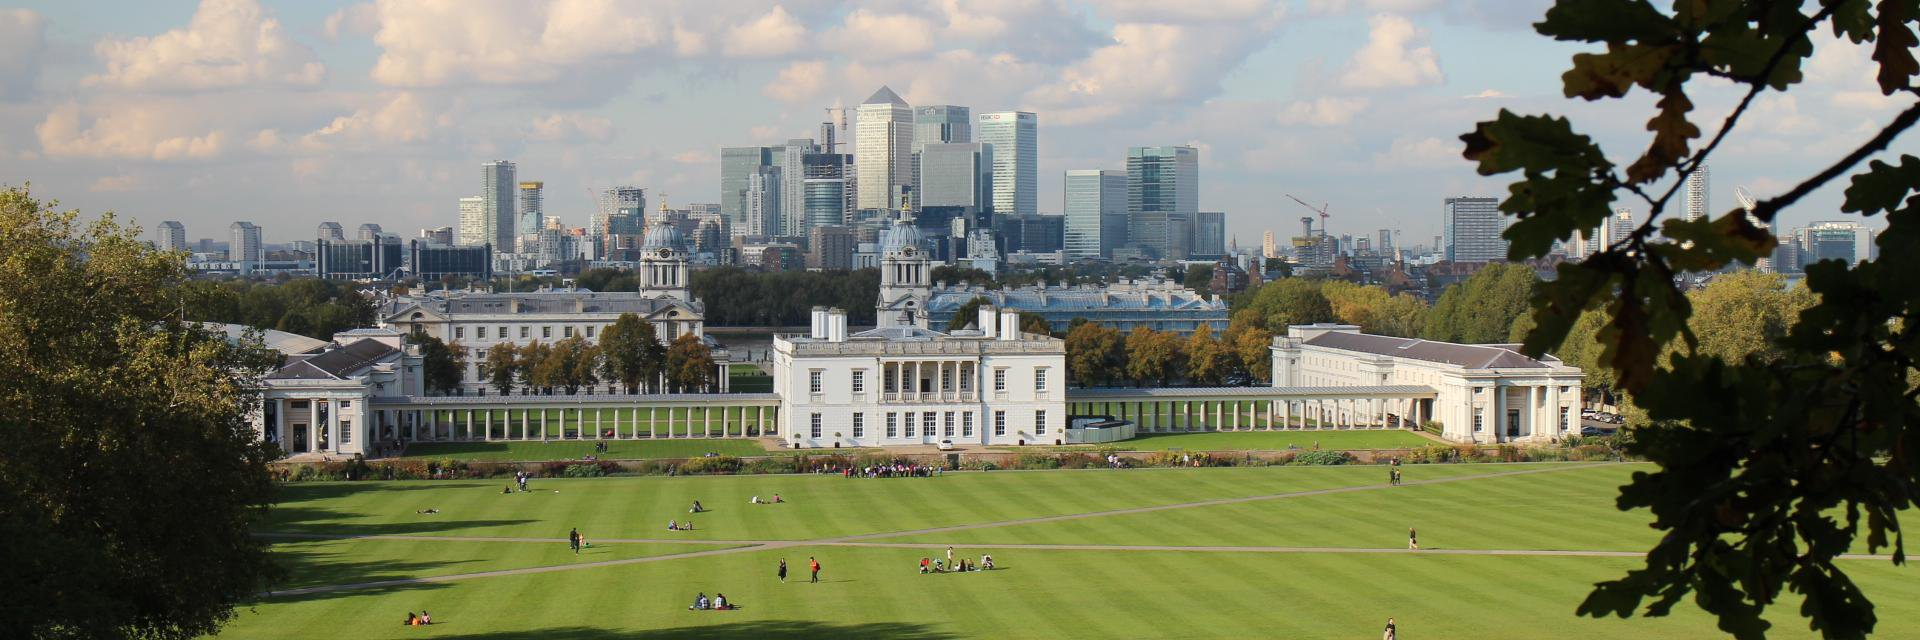 'Explore sites & secrets of Greenwich' New tour incl. Eltham Palace, Severndroog, Thames Barrier & Charlton House https://t.co/sXNMqD969H https://t.co/pszKOhPueg